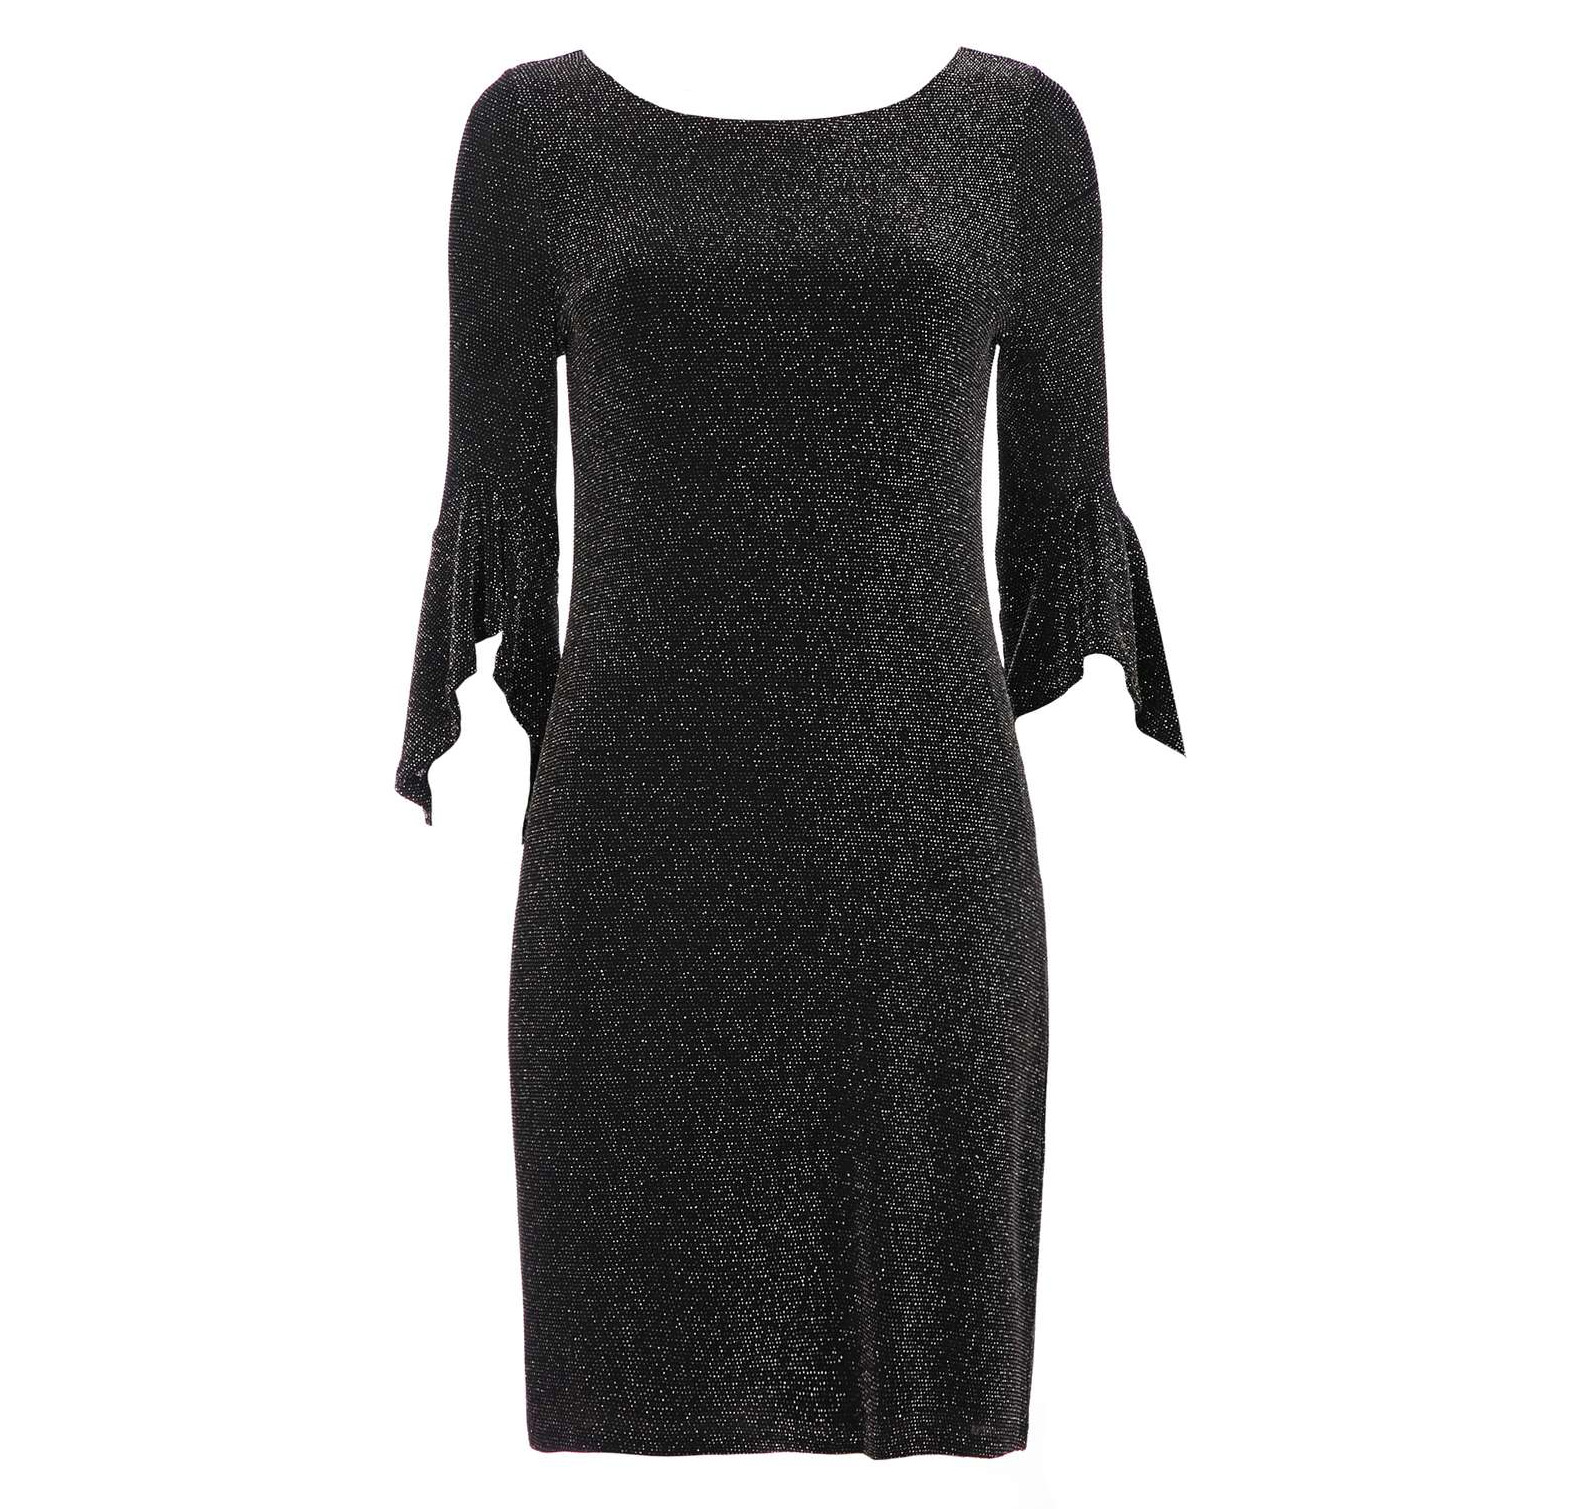 Wallis Petite Black Sparkle Flute Sleeve Dress, £45